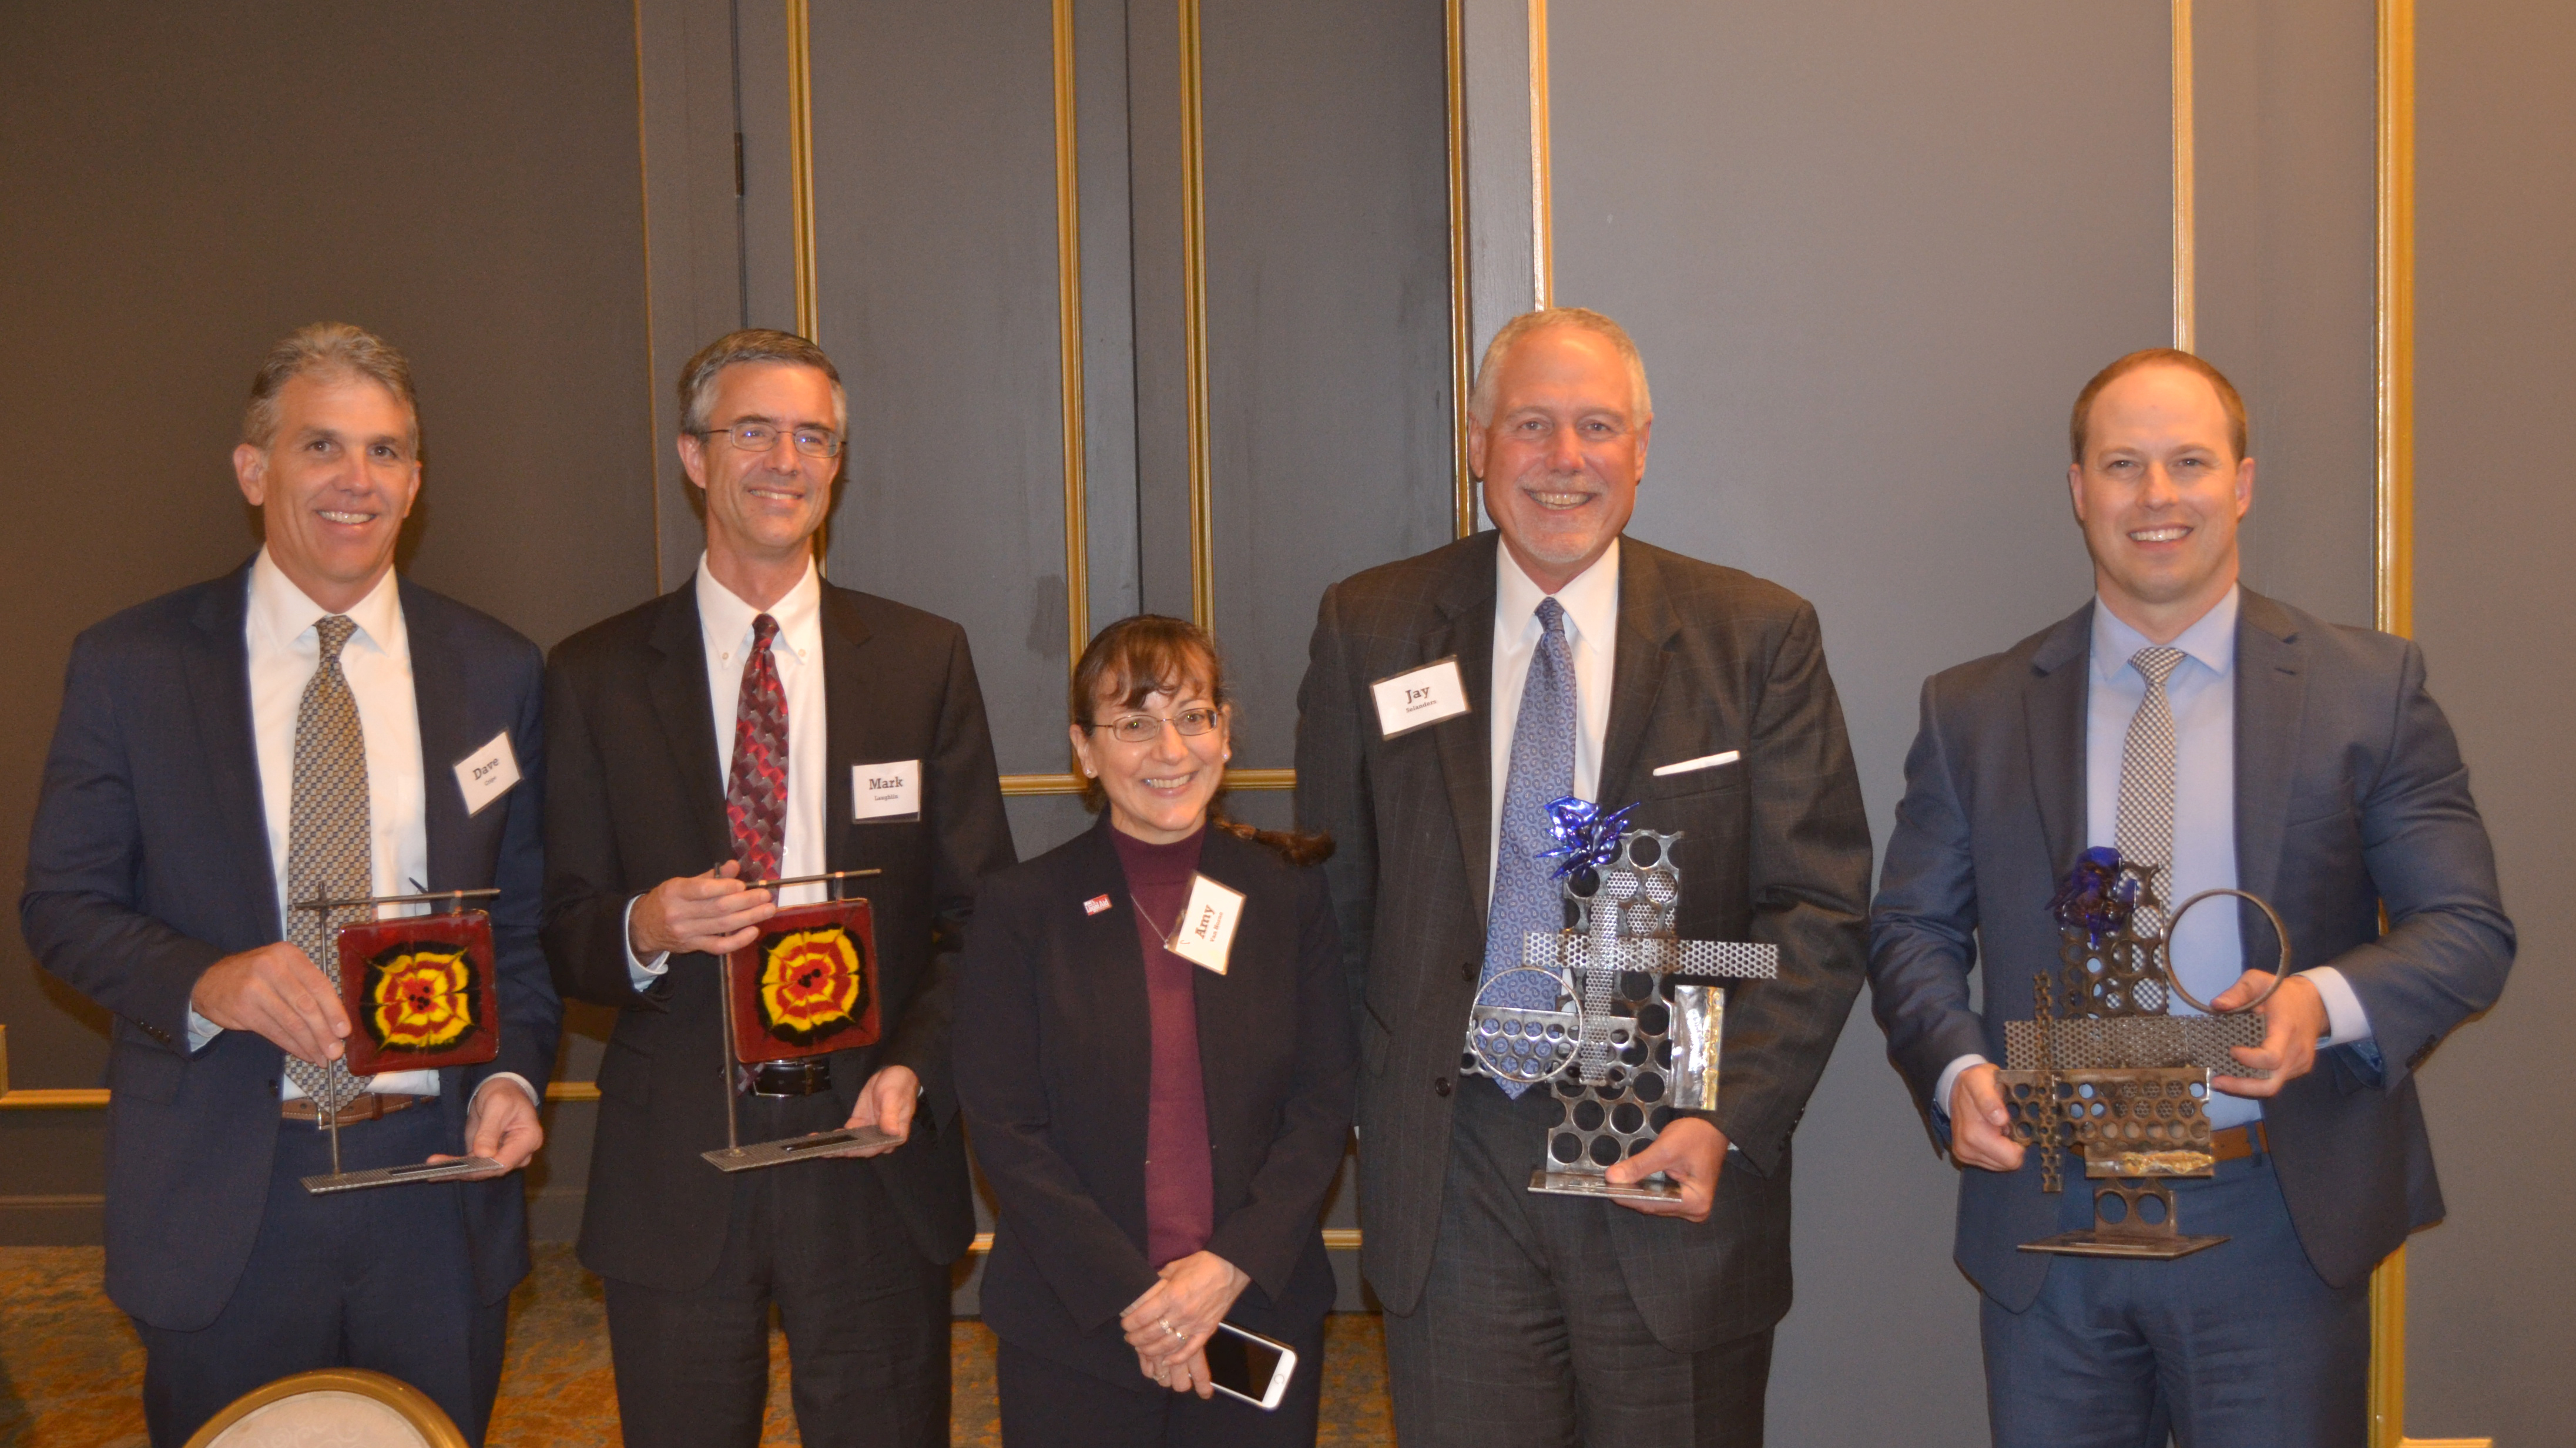 Recipients of the inaugural Equal Justice Awards, presented by Legal Aid of Nebraska, were, from left, David Cripe (Hauptman O'Brien), Mark Laughlin (Fraser Stryker), Amy Van Horne (Kutak Rock), Jay Selanders (Kutak Rock) and Jason L. Hansen (American National Bank). They received the awards during a reception at the Happy Hollow Country Club on Sept. 12, 2019. (Courtesy Legal Aid of Nebraska)